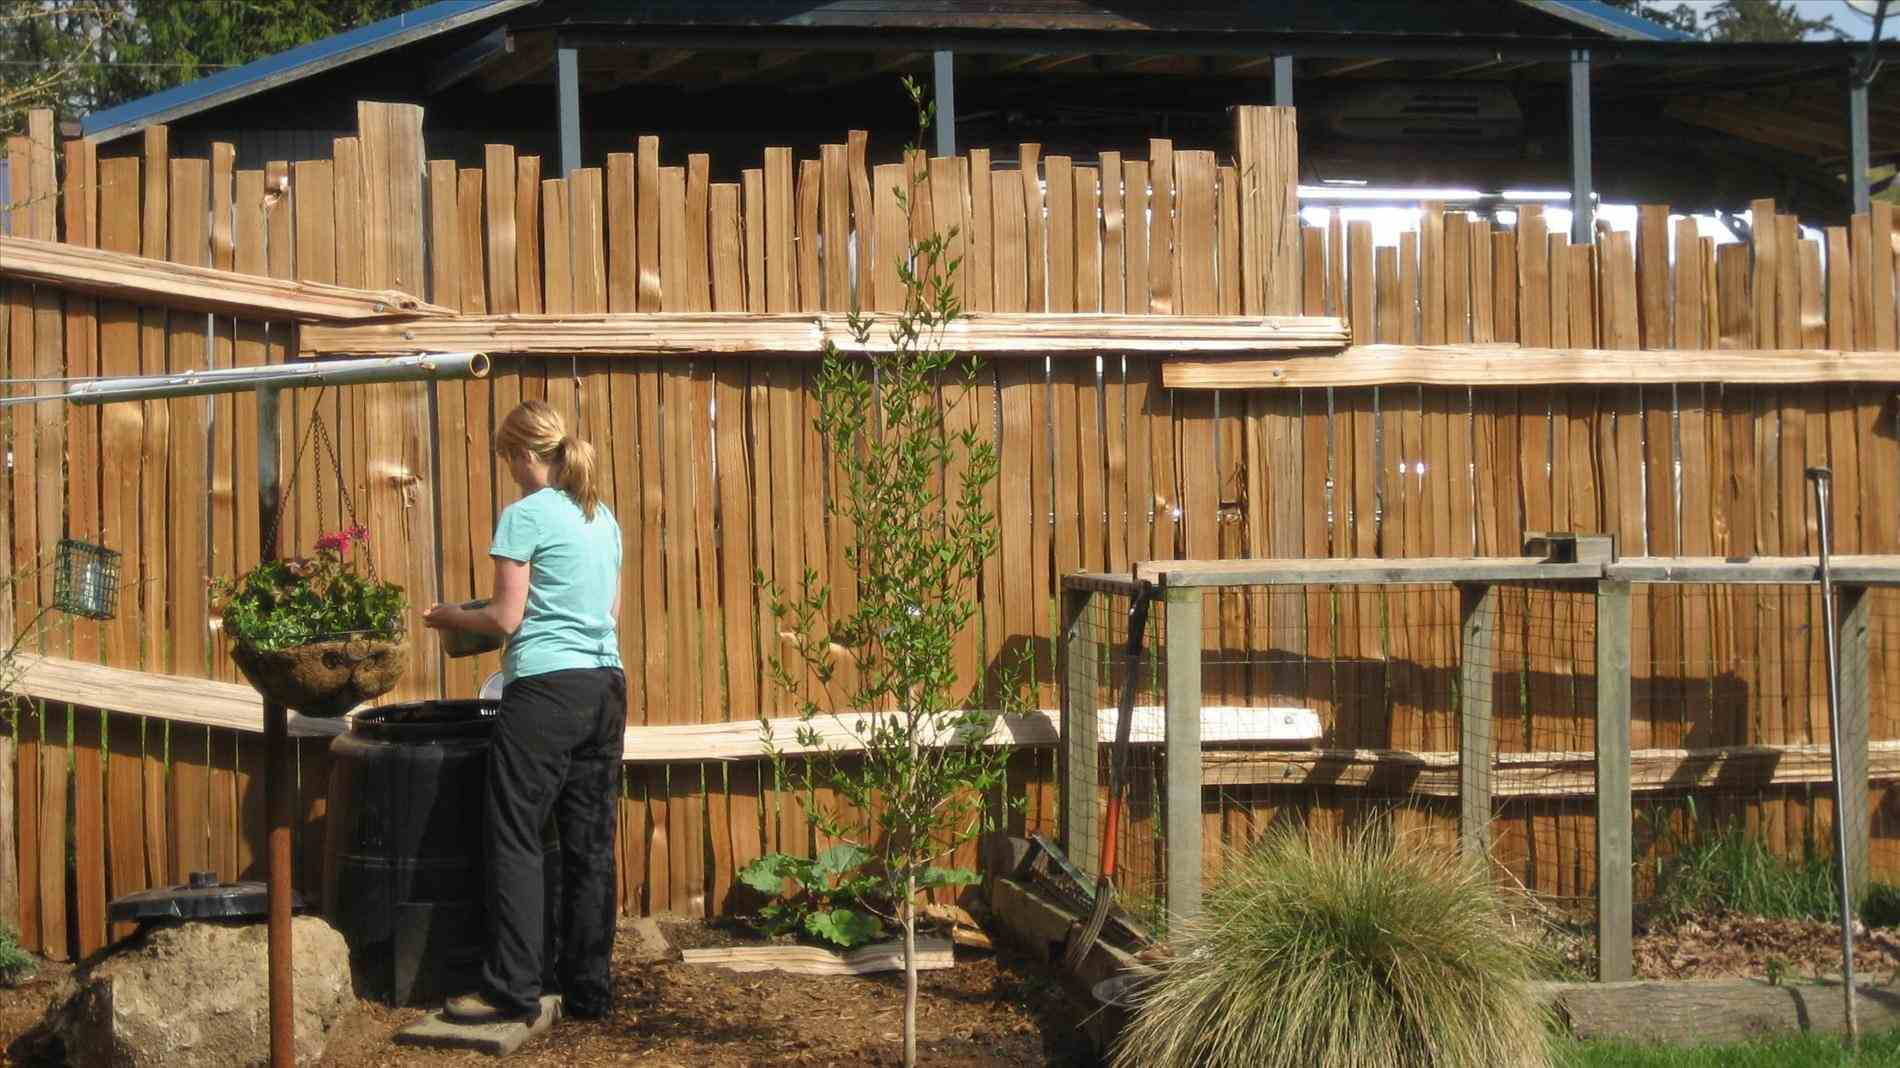 Cool Fence Ideas For Backyard Front Yard Landscape Fence in 12 Genius Initiatives of How to Upgrade Cool Fence Ideas For Backyard